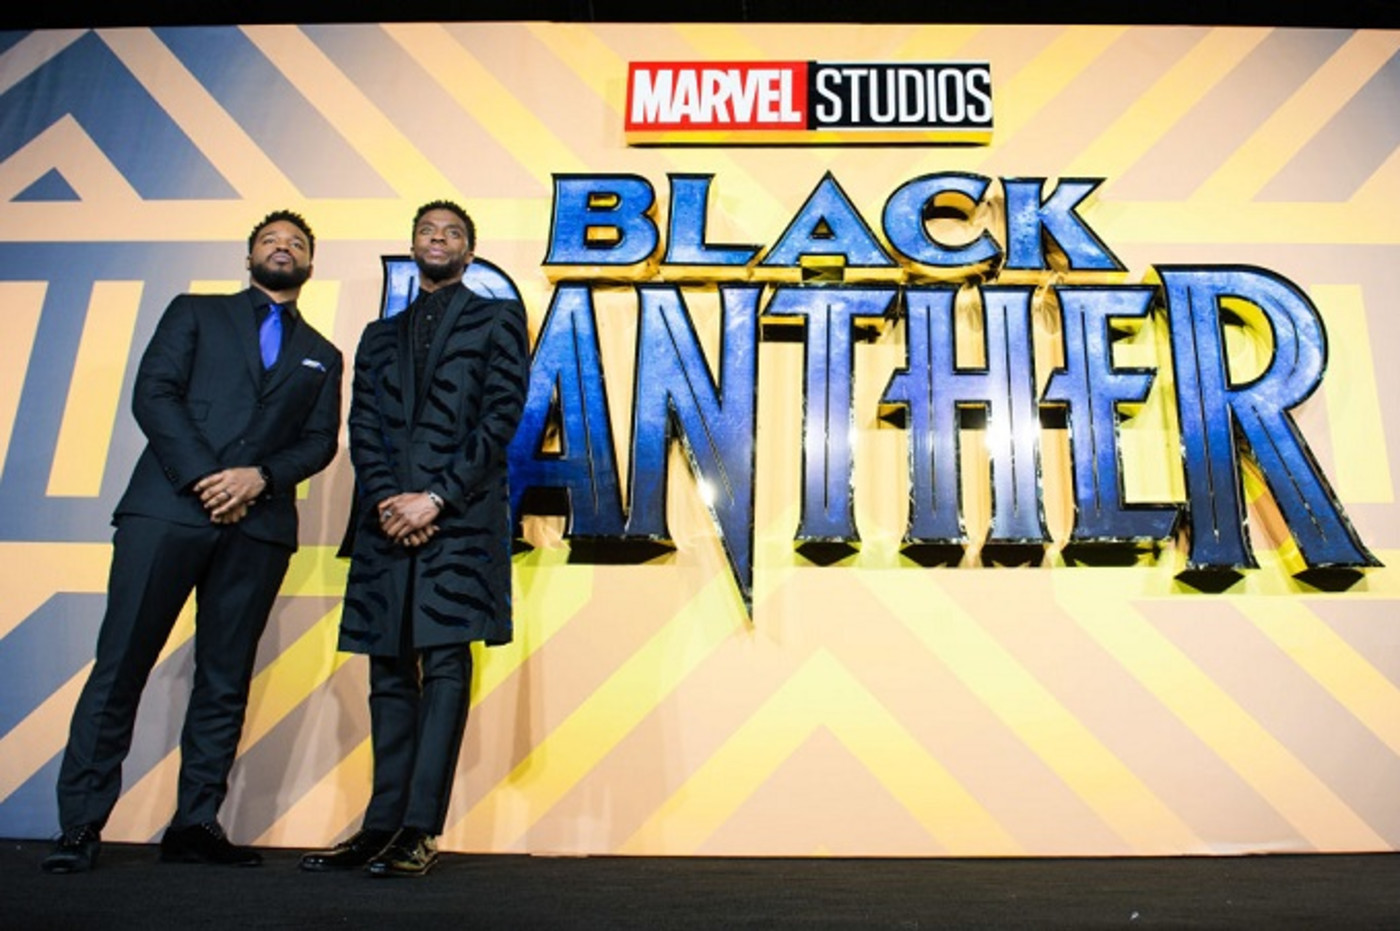 Black Panther's Ryan Coogler and Chadwick Boseman